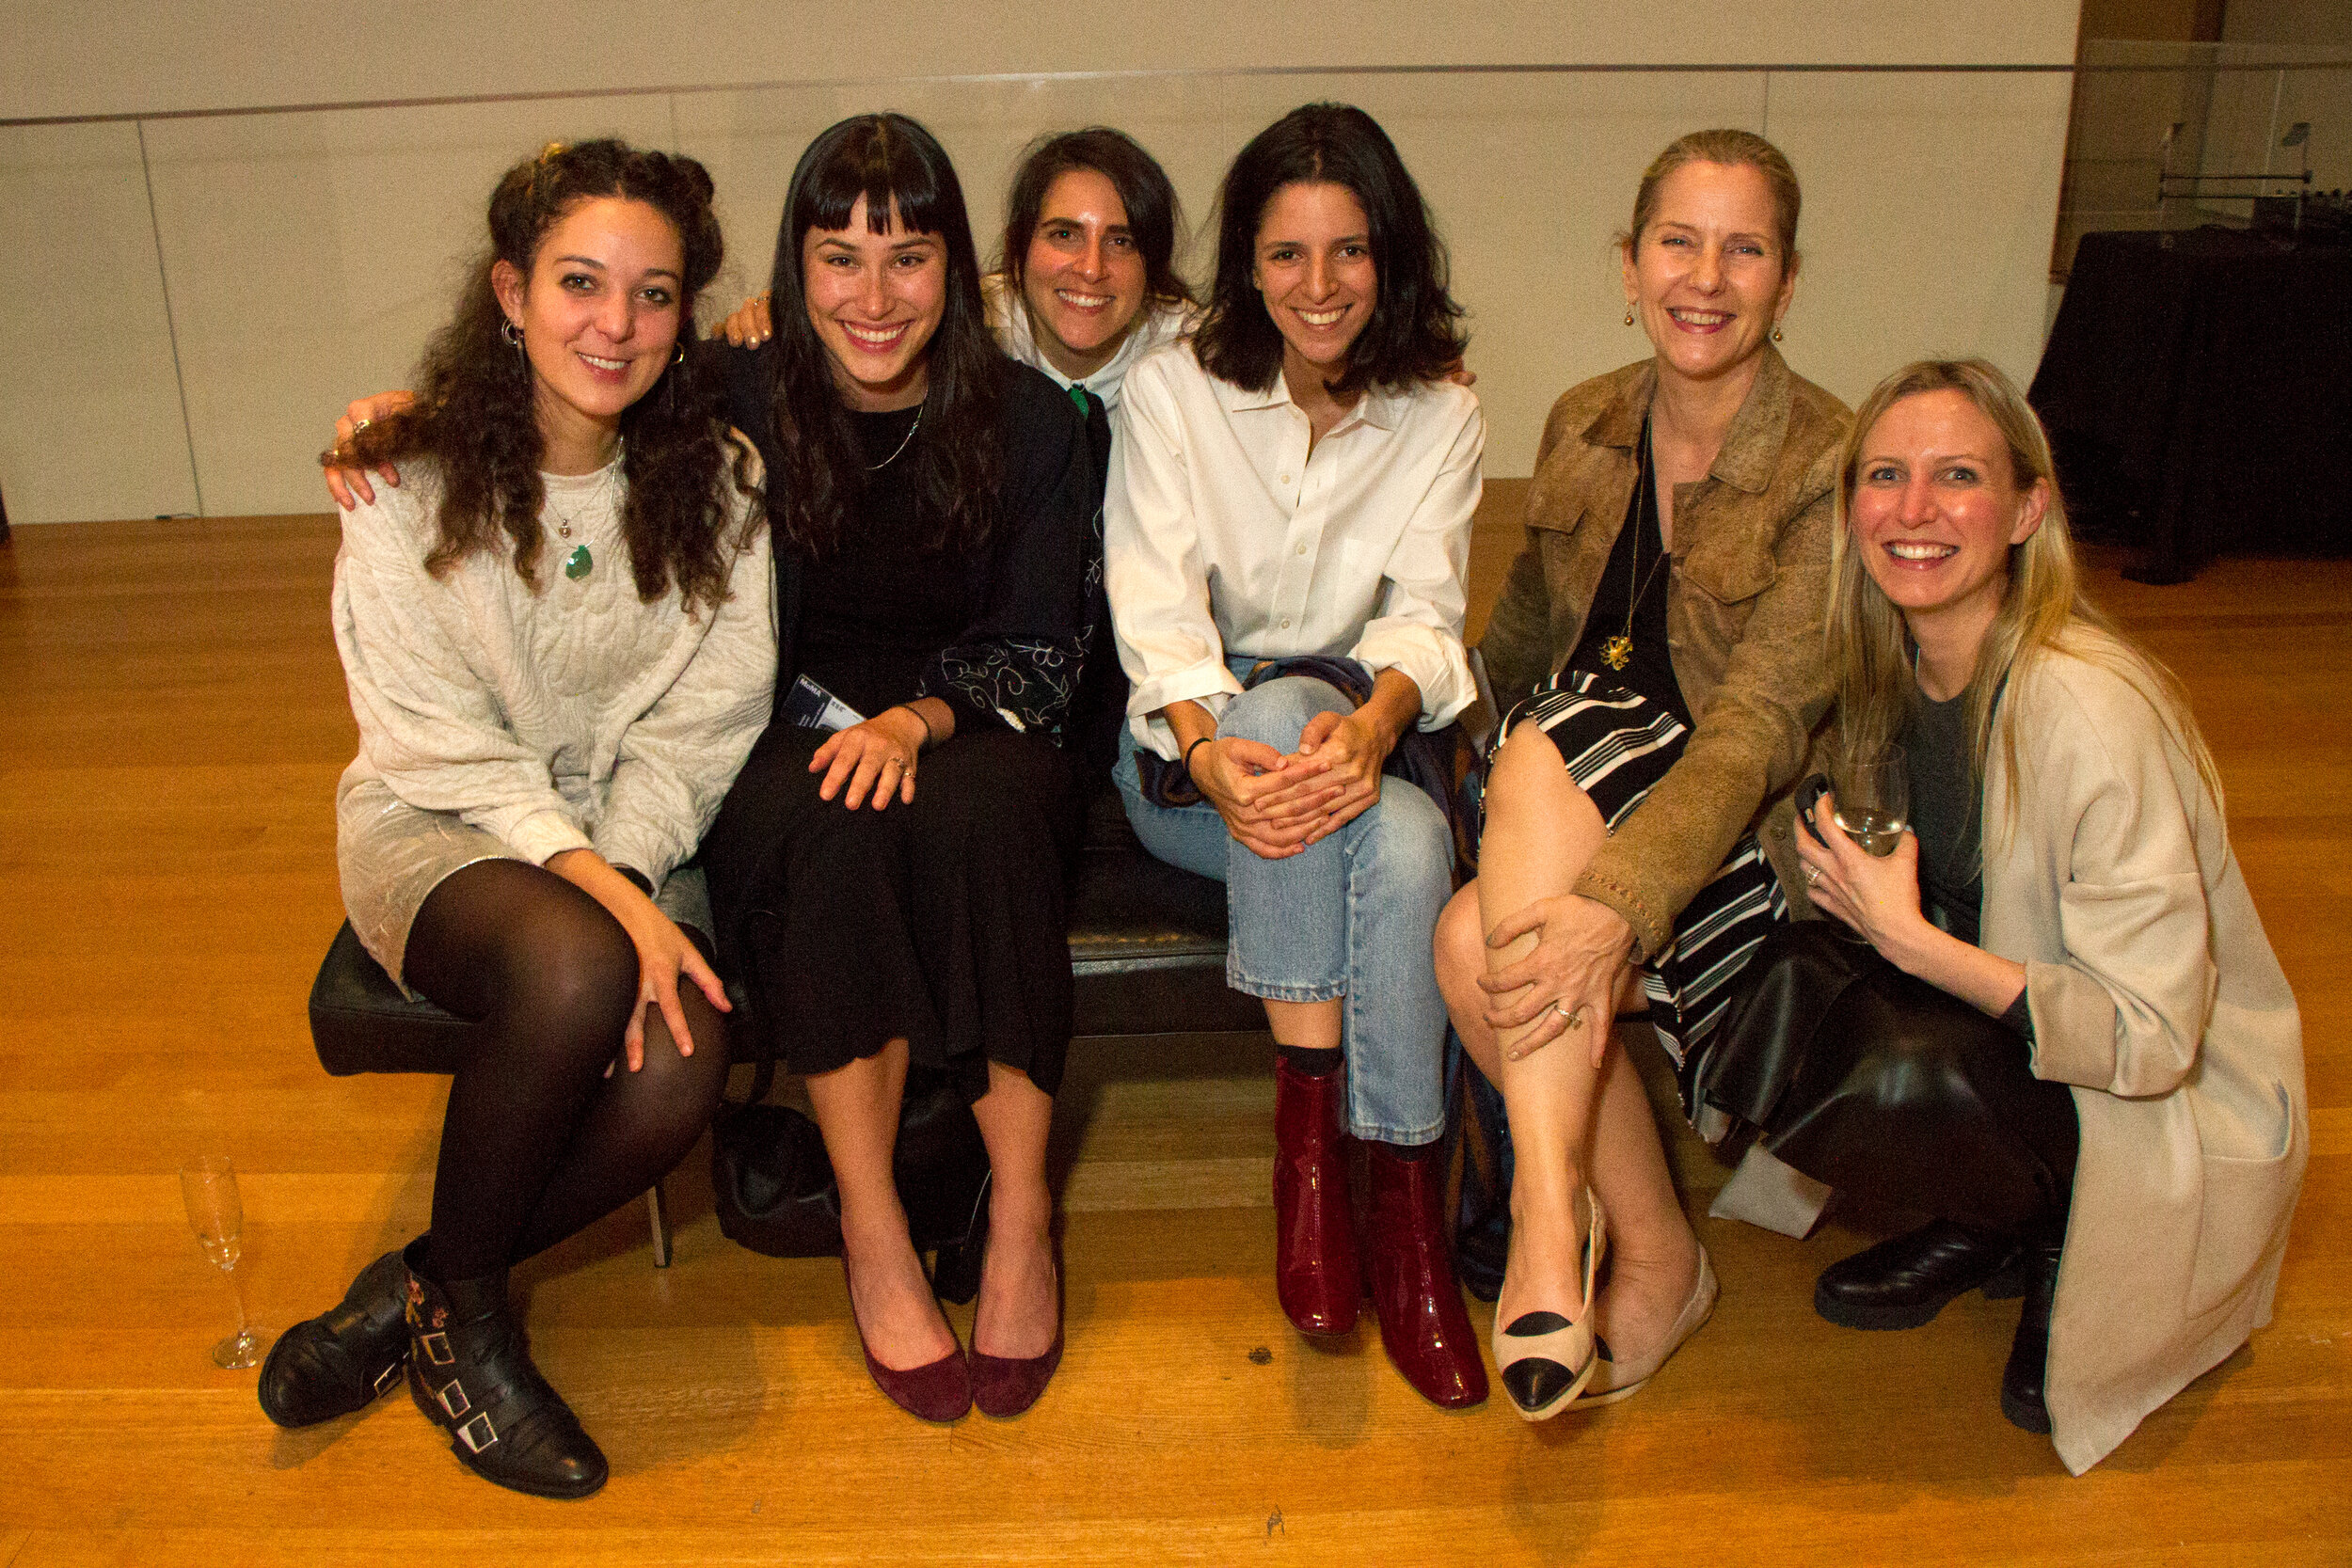 """The curatorial team at the """"Fashion Is Kale: A One-Day Event Celebrating Fashion's Hidden Heroes"""" on October 19, 2017, at The Museum of Modern Art, New York. Left to right, Erica Petrillo, Kristina Parsons, Stephanie Kramer, Anna Burkhardt, Paola Antonelli, Michelle Millar Fisher. Photo: Manuel Martagon."""